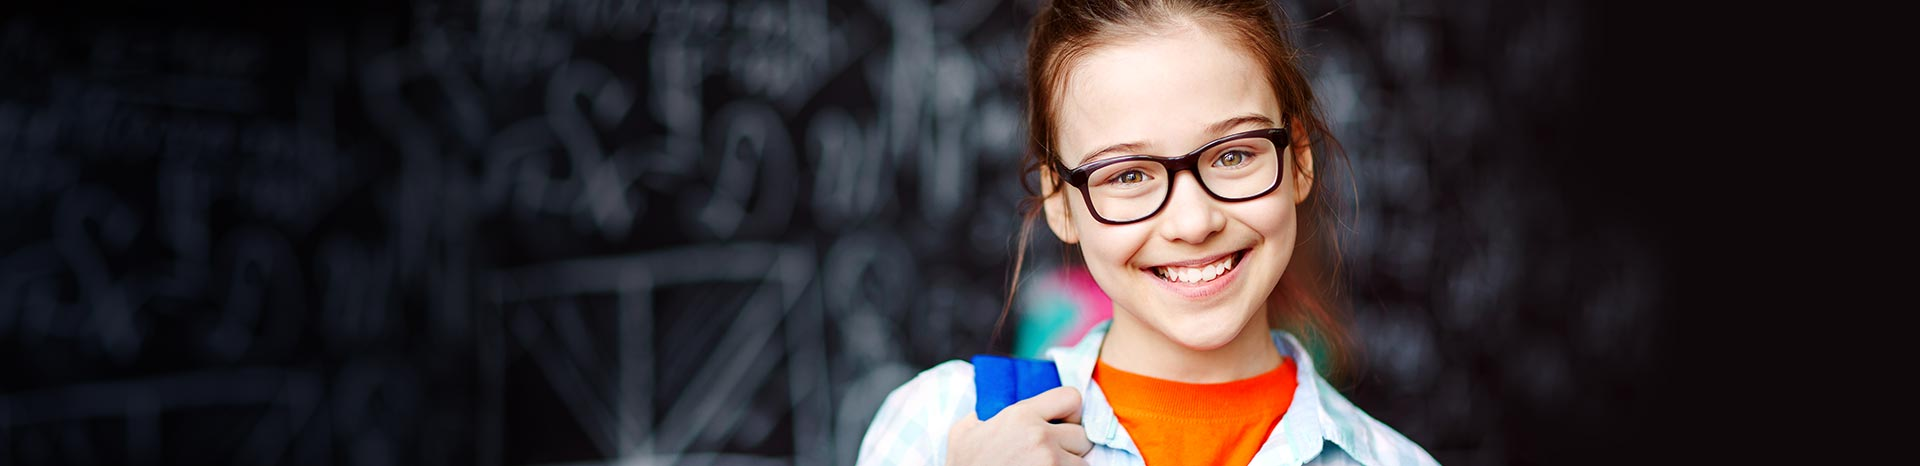 girls-with-glasses